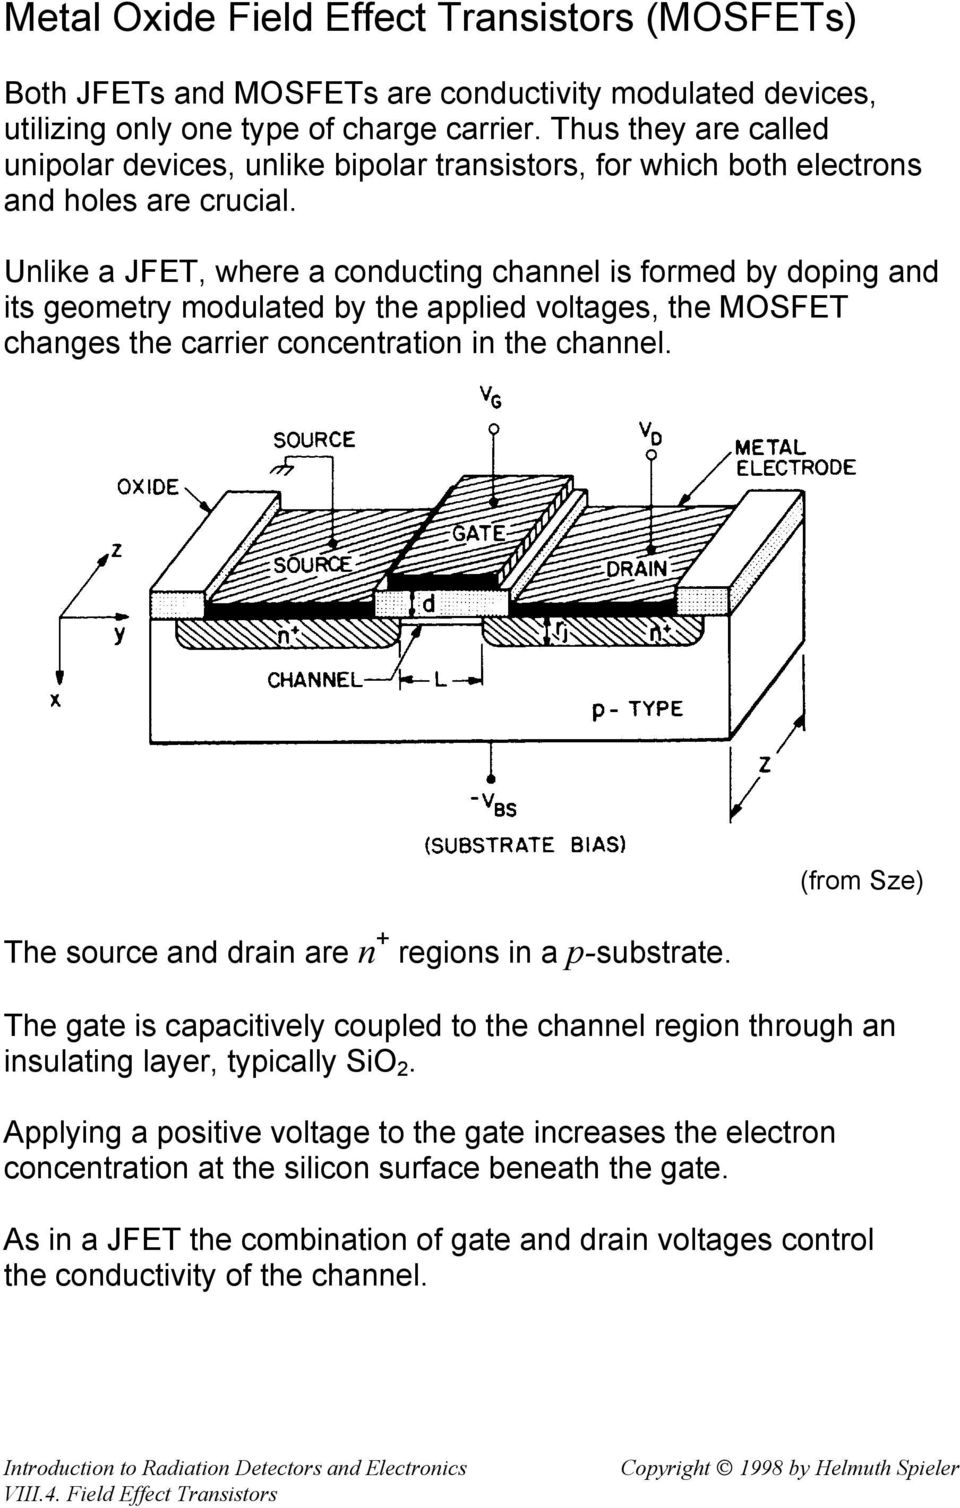 Unlike a JFET, where a conducting channel is formed by doping and its geometry modulated by the applied voltages, the MOSFET changes the carrier concentration in the channel.